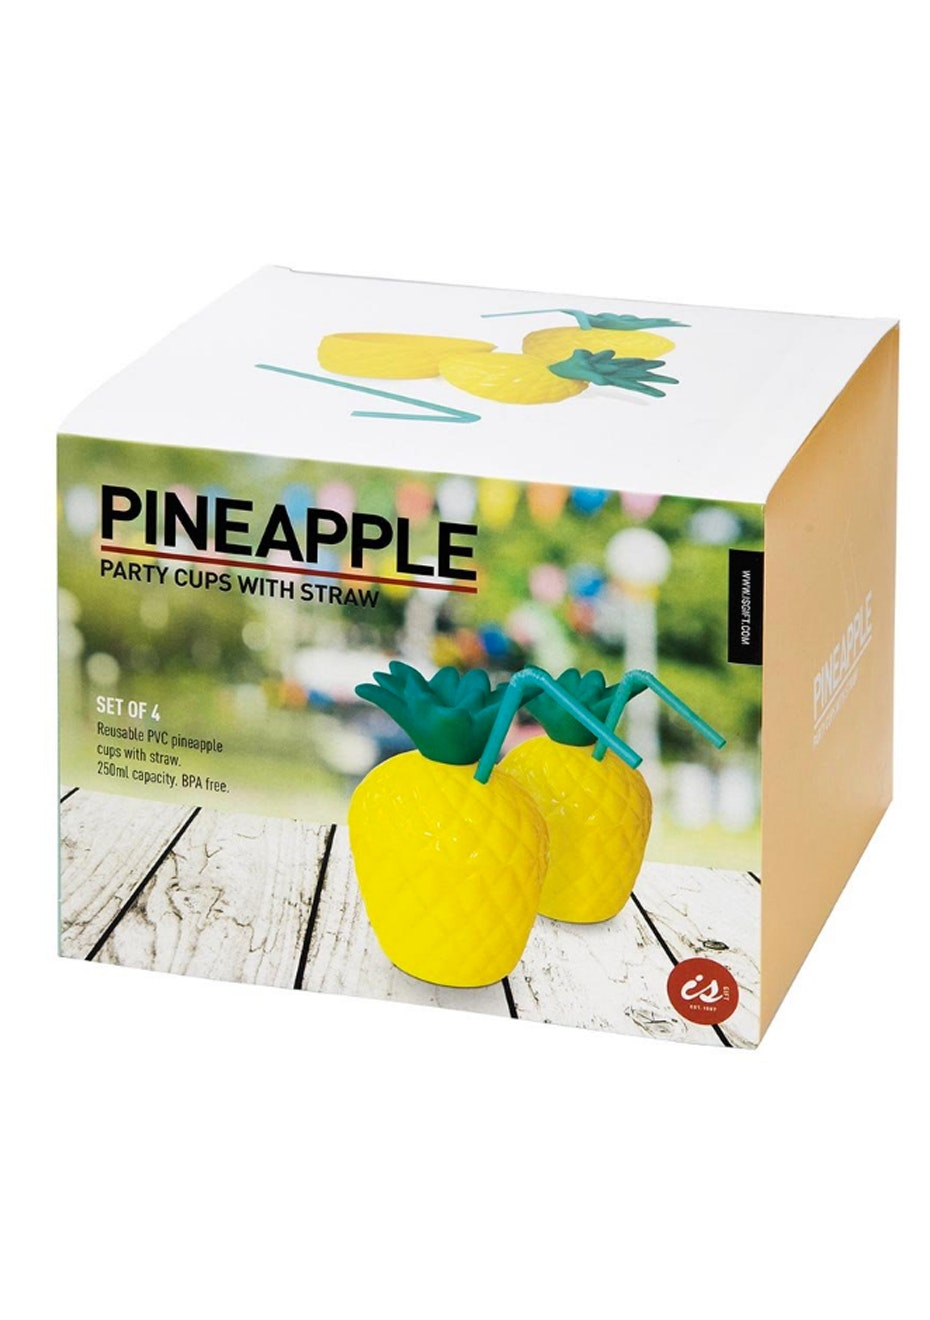 Pineapple Party Cups - Set of 4